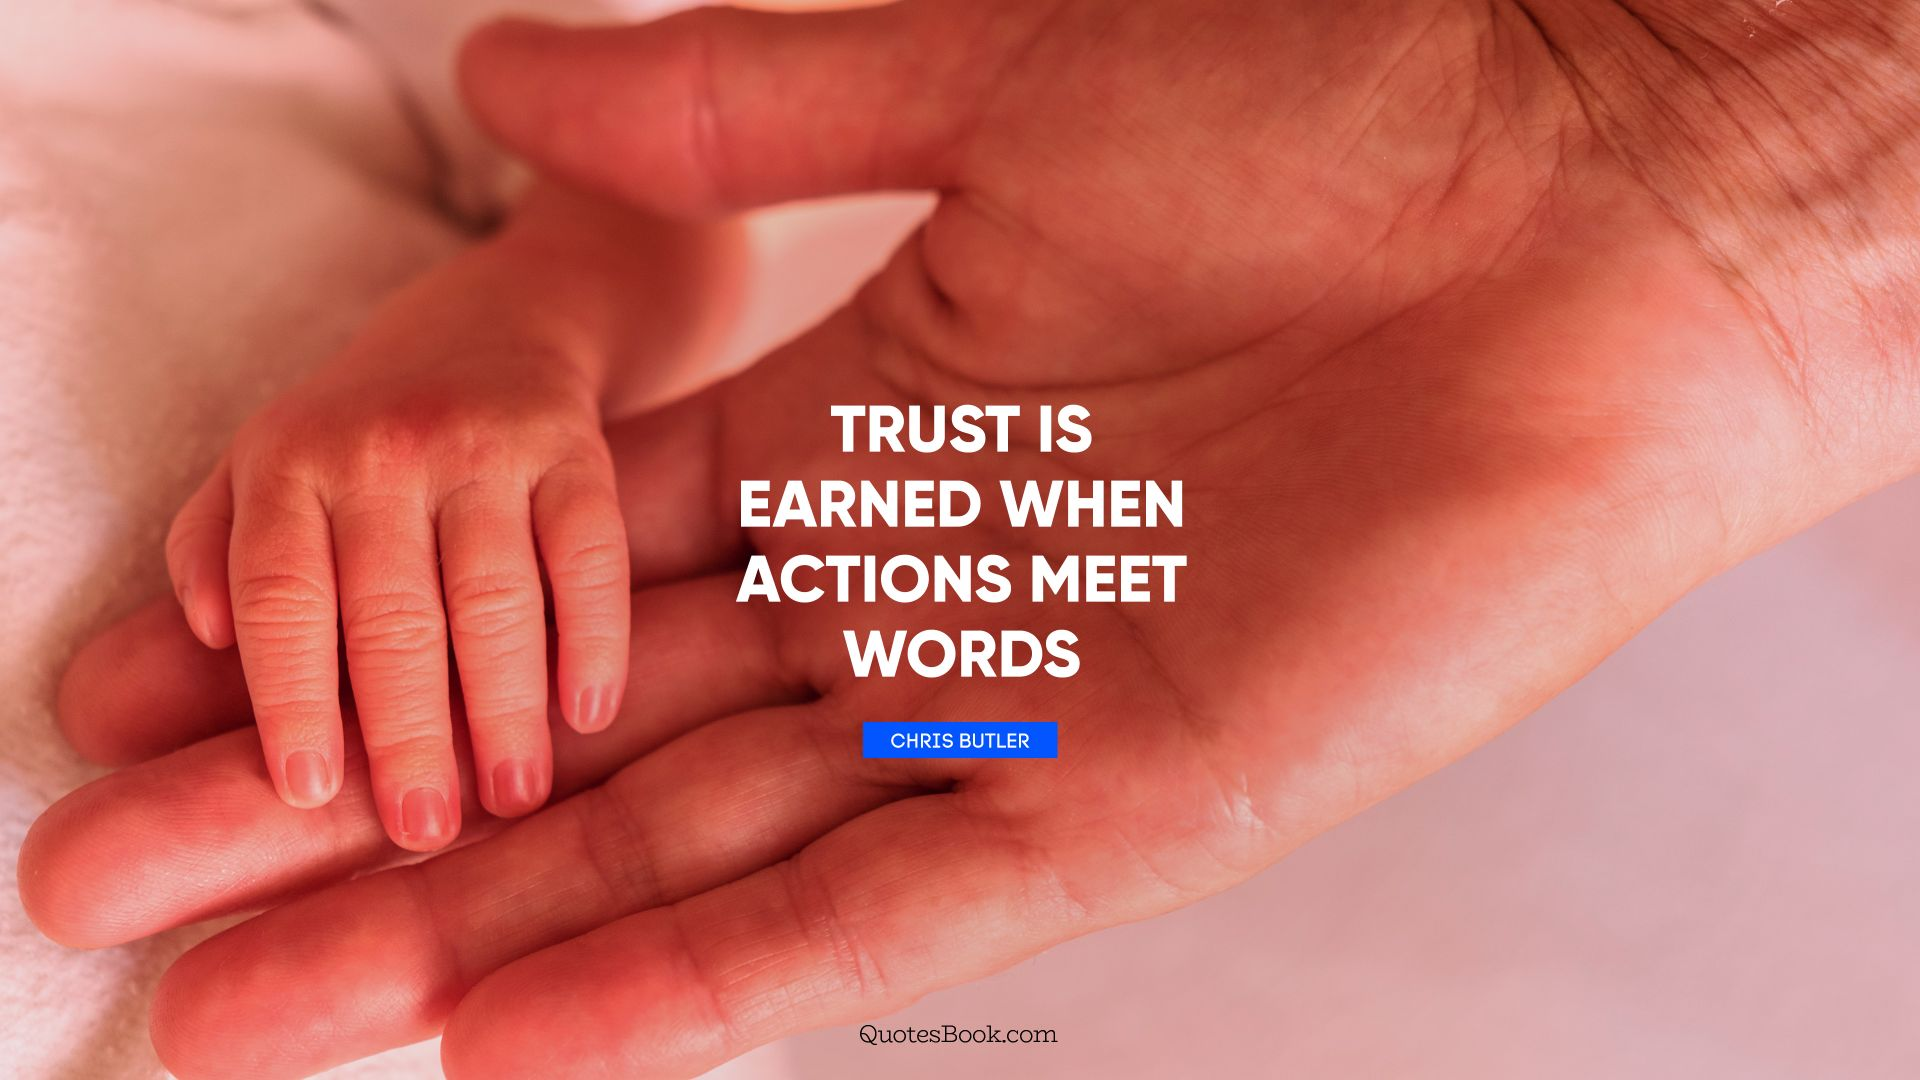 Trust is earned when actions meet words. - Quote by Chris Butler